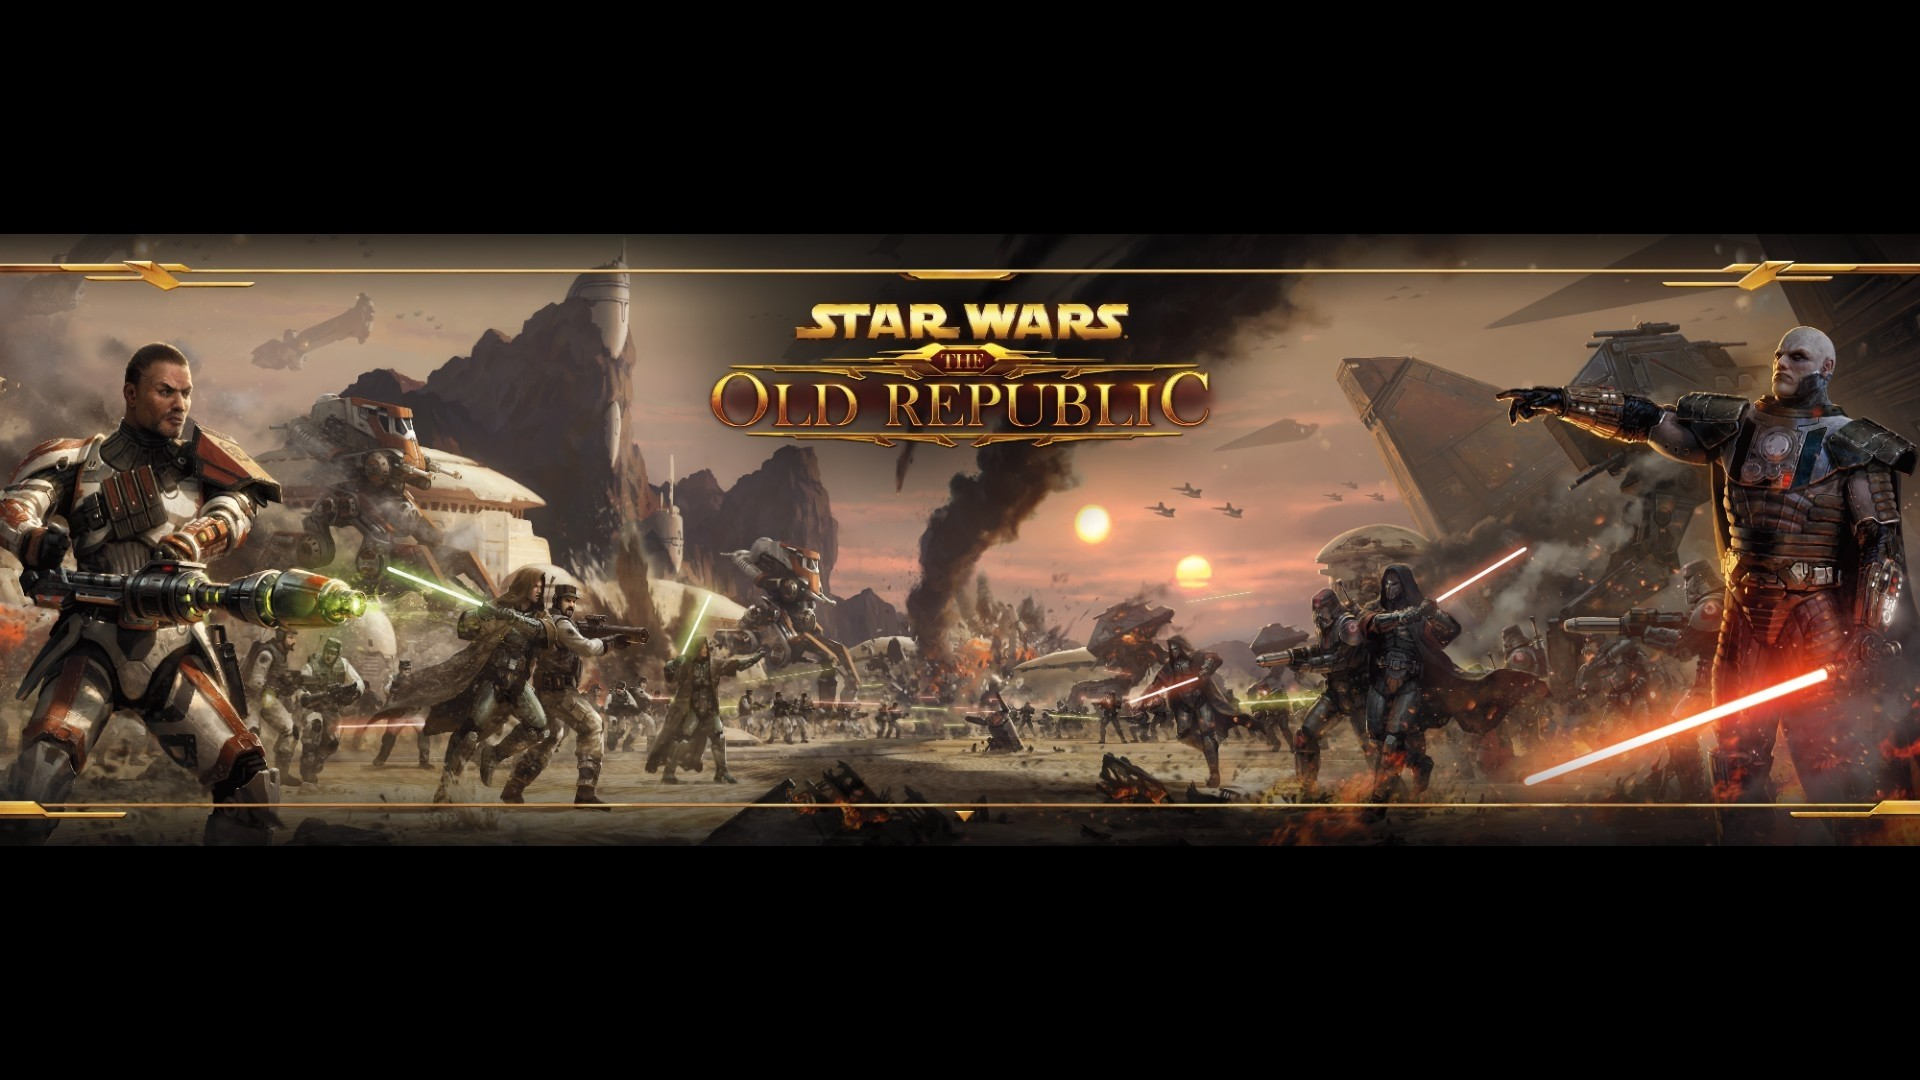 1920x1080  Wallpaper star wars the old republic, battle, gun, lightsabers,  game